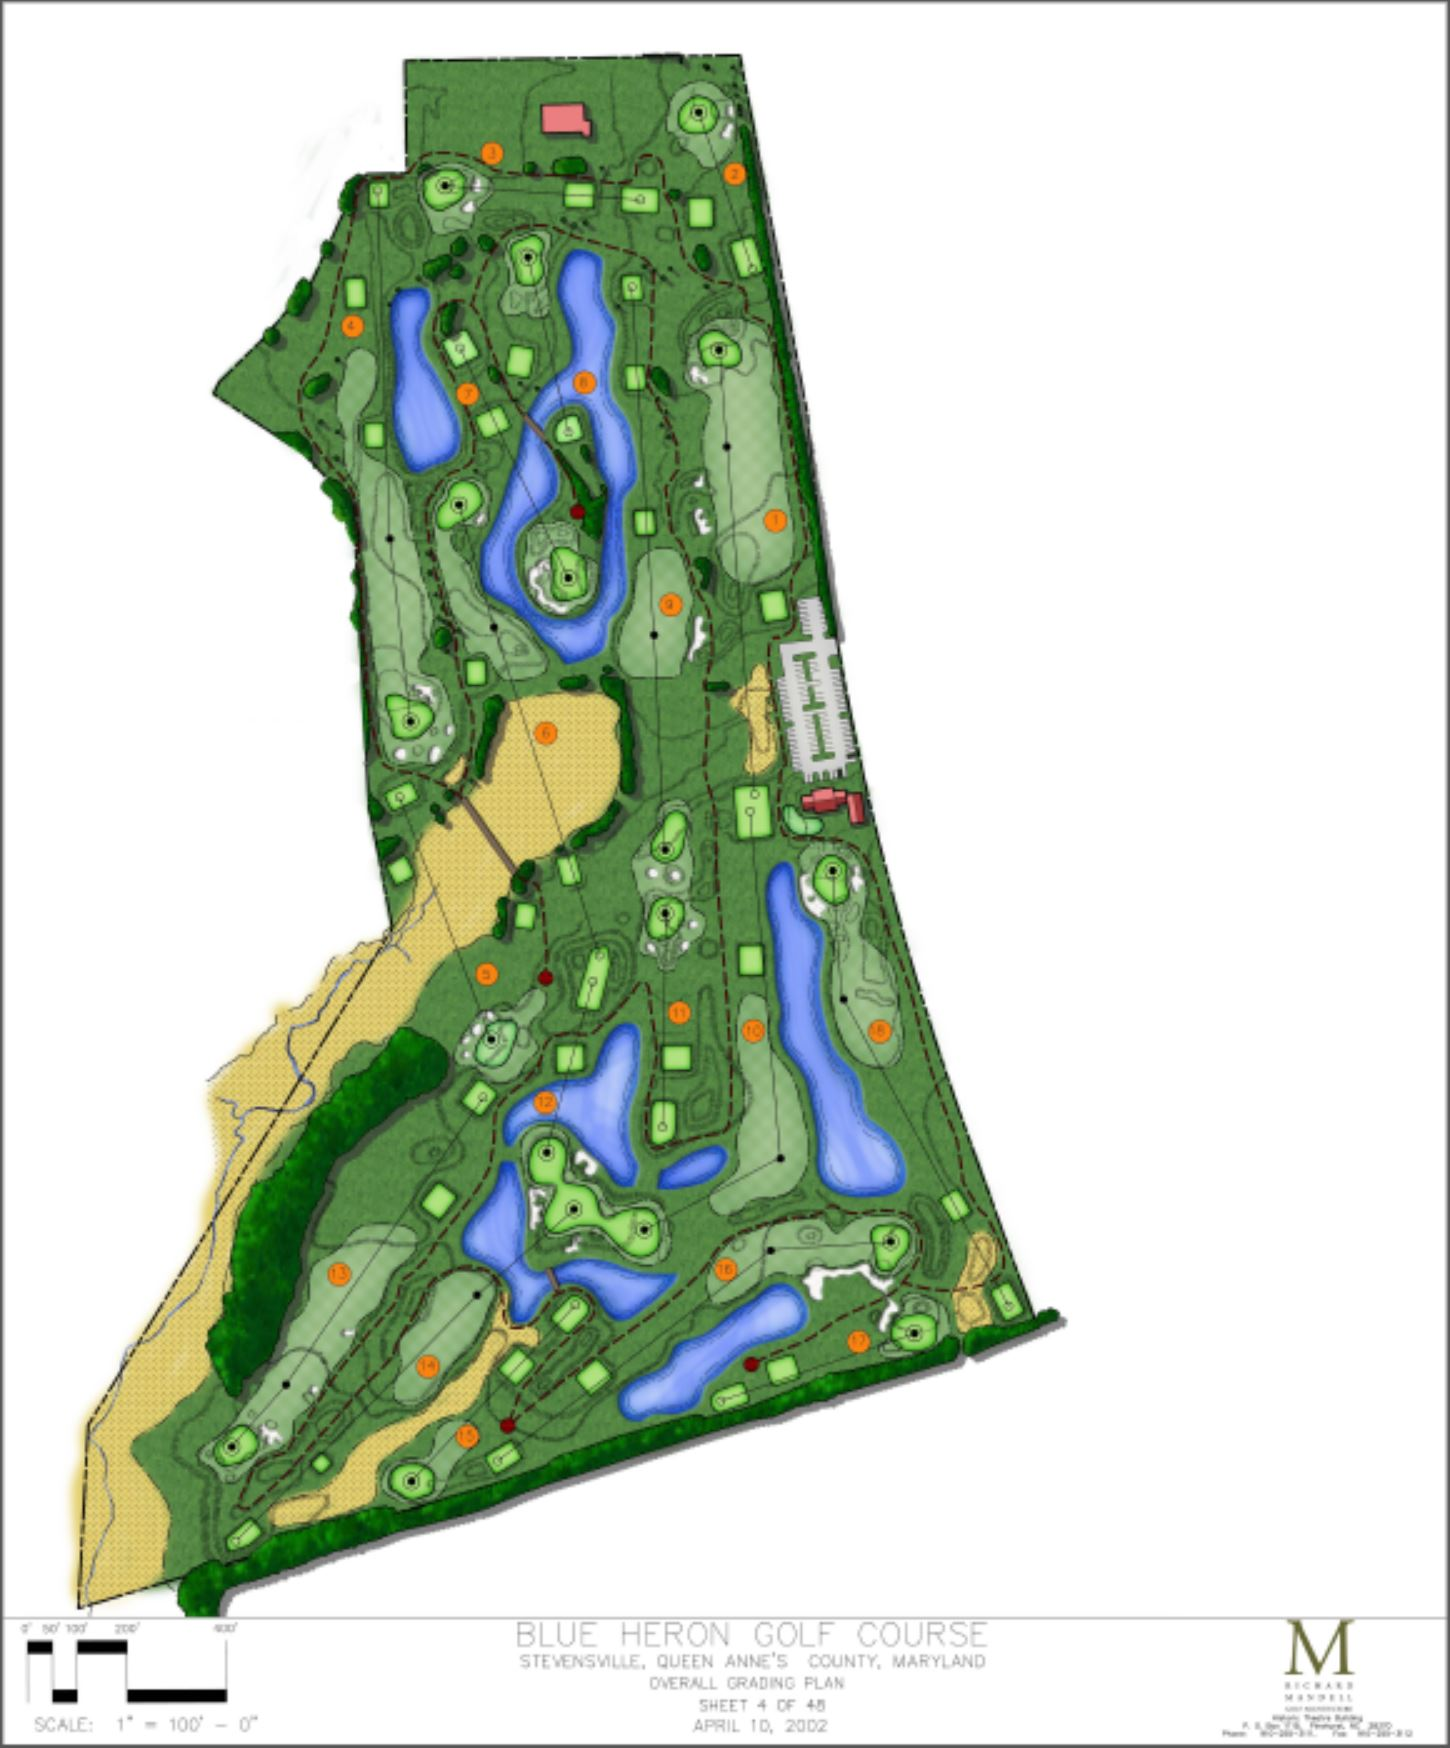 Blue Heron Golf Course Master Plan